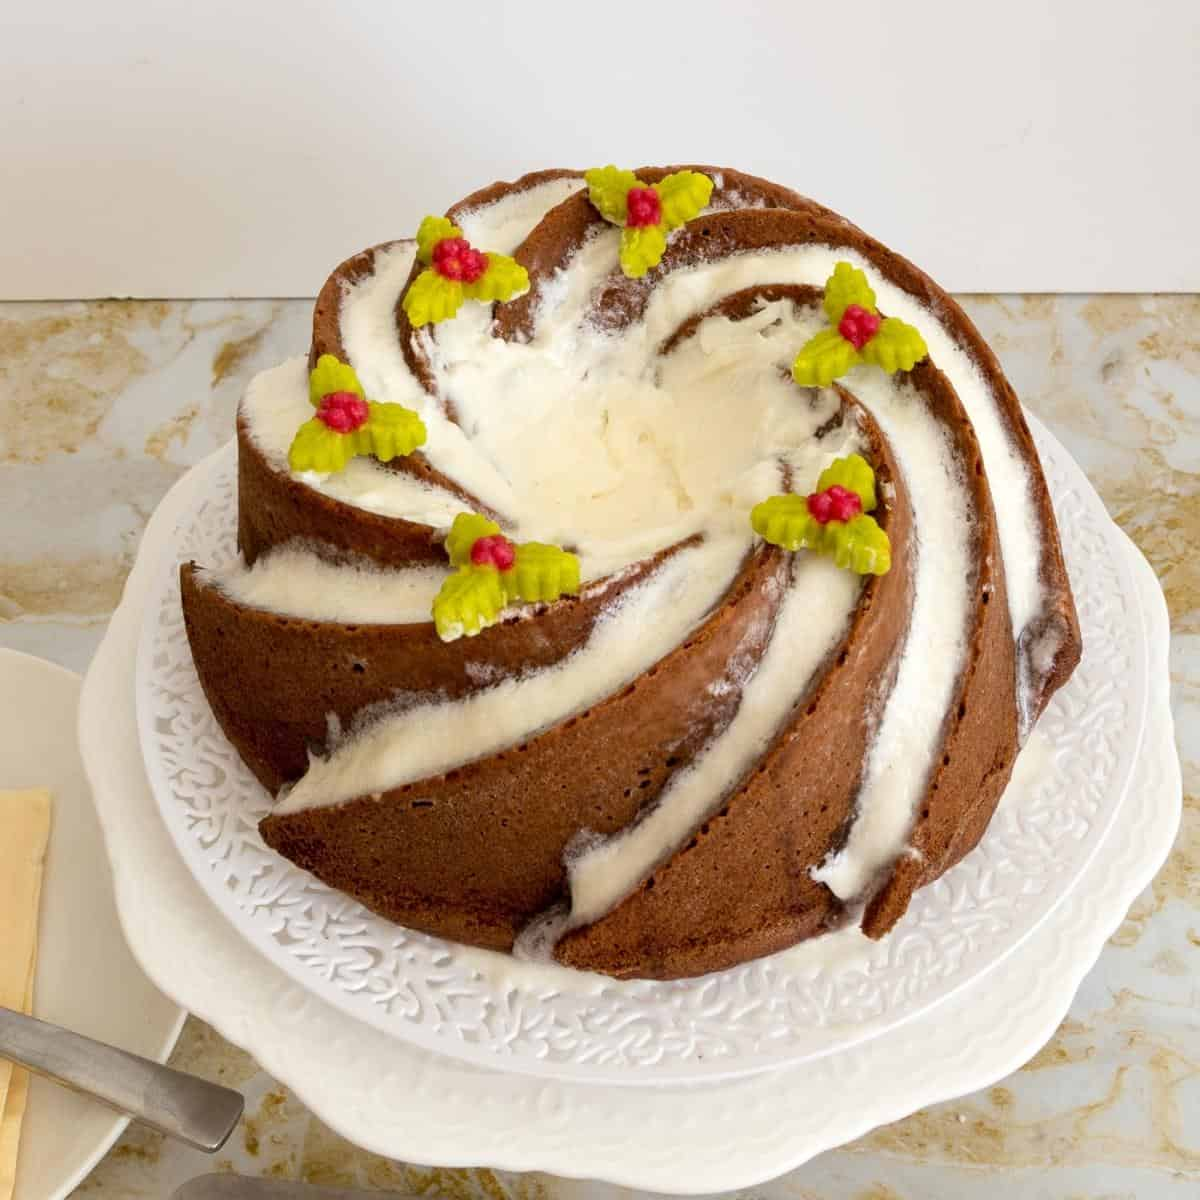 A frosted bundt cake on a cake stand